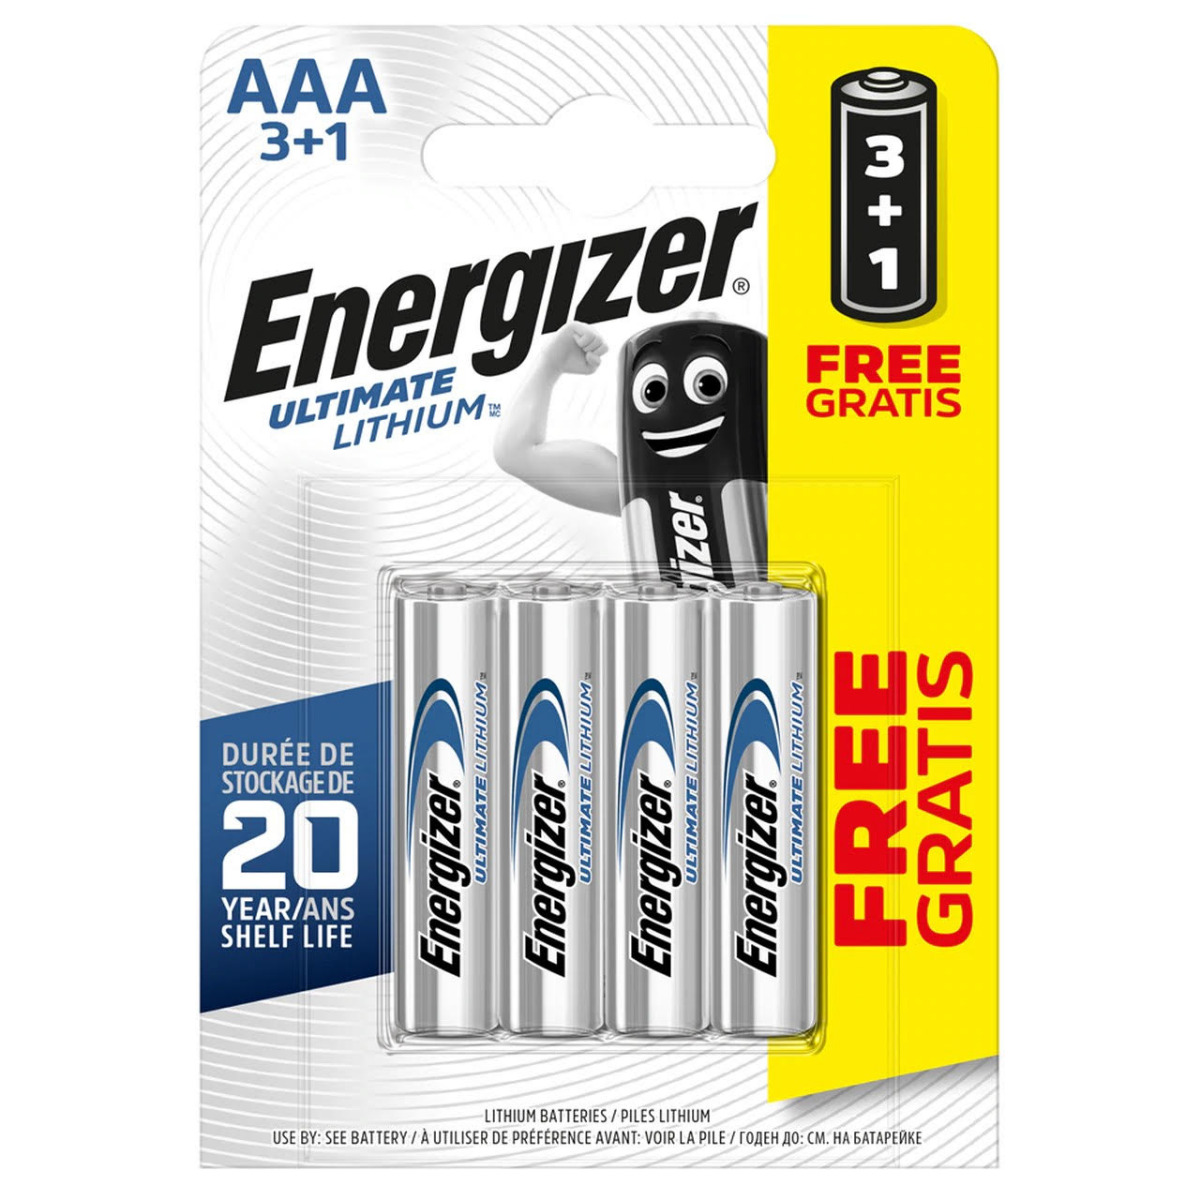 Energizer Ultimate Lithium AAA LR03 L92 Batteries   4 Pack